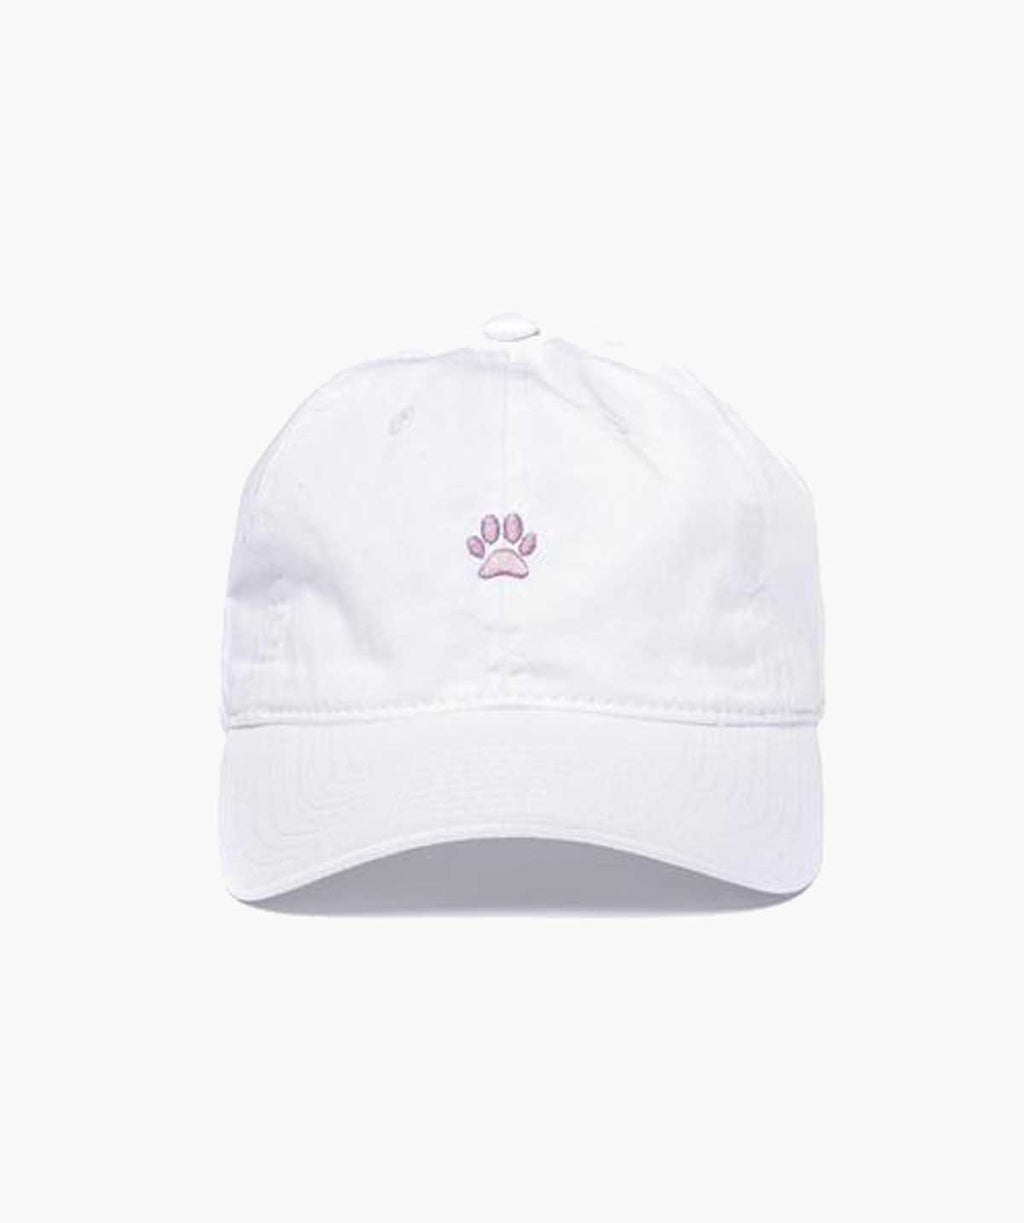 Dad Hat - White/Pink - MODLEASH